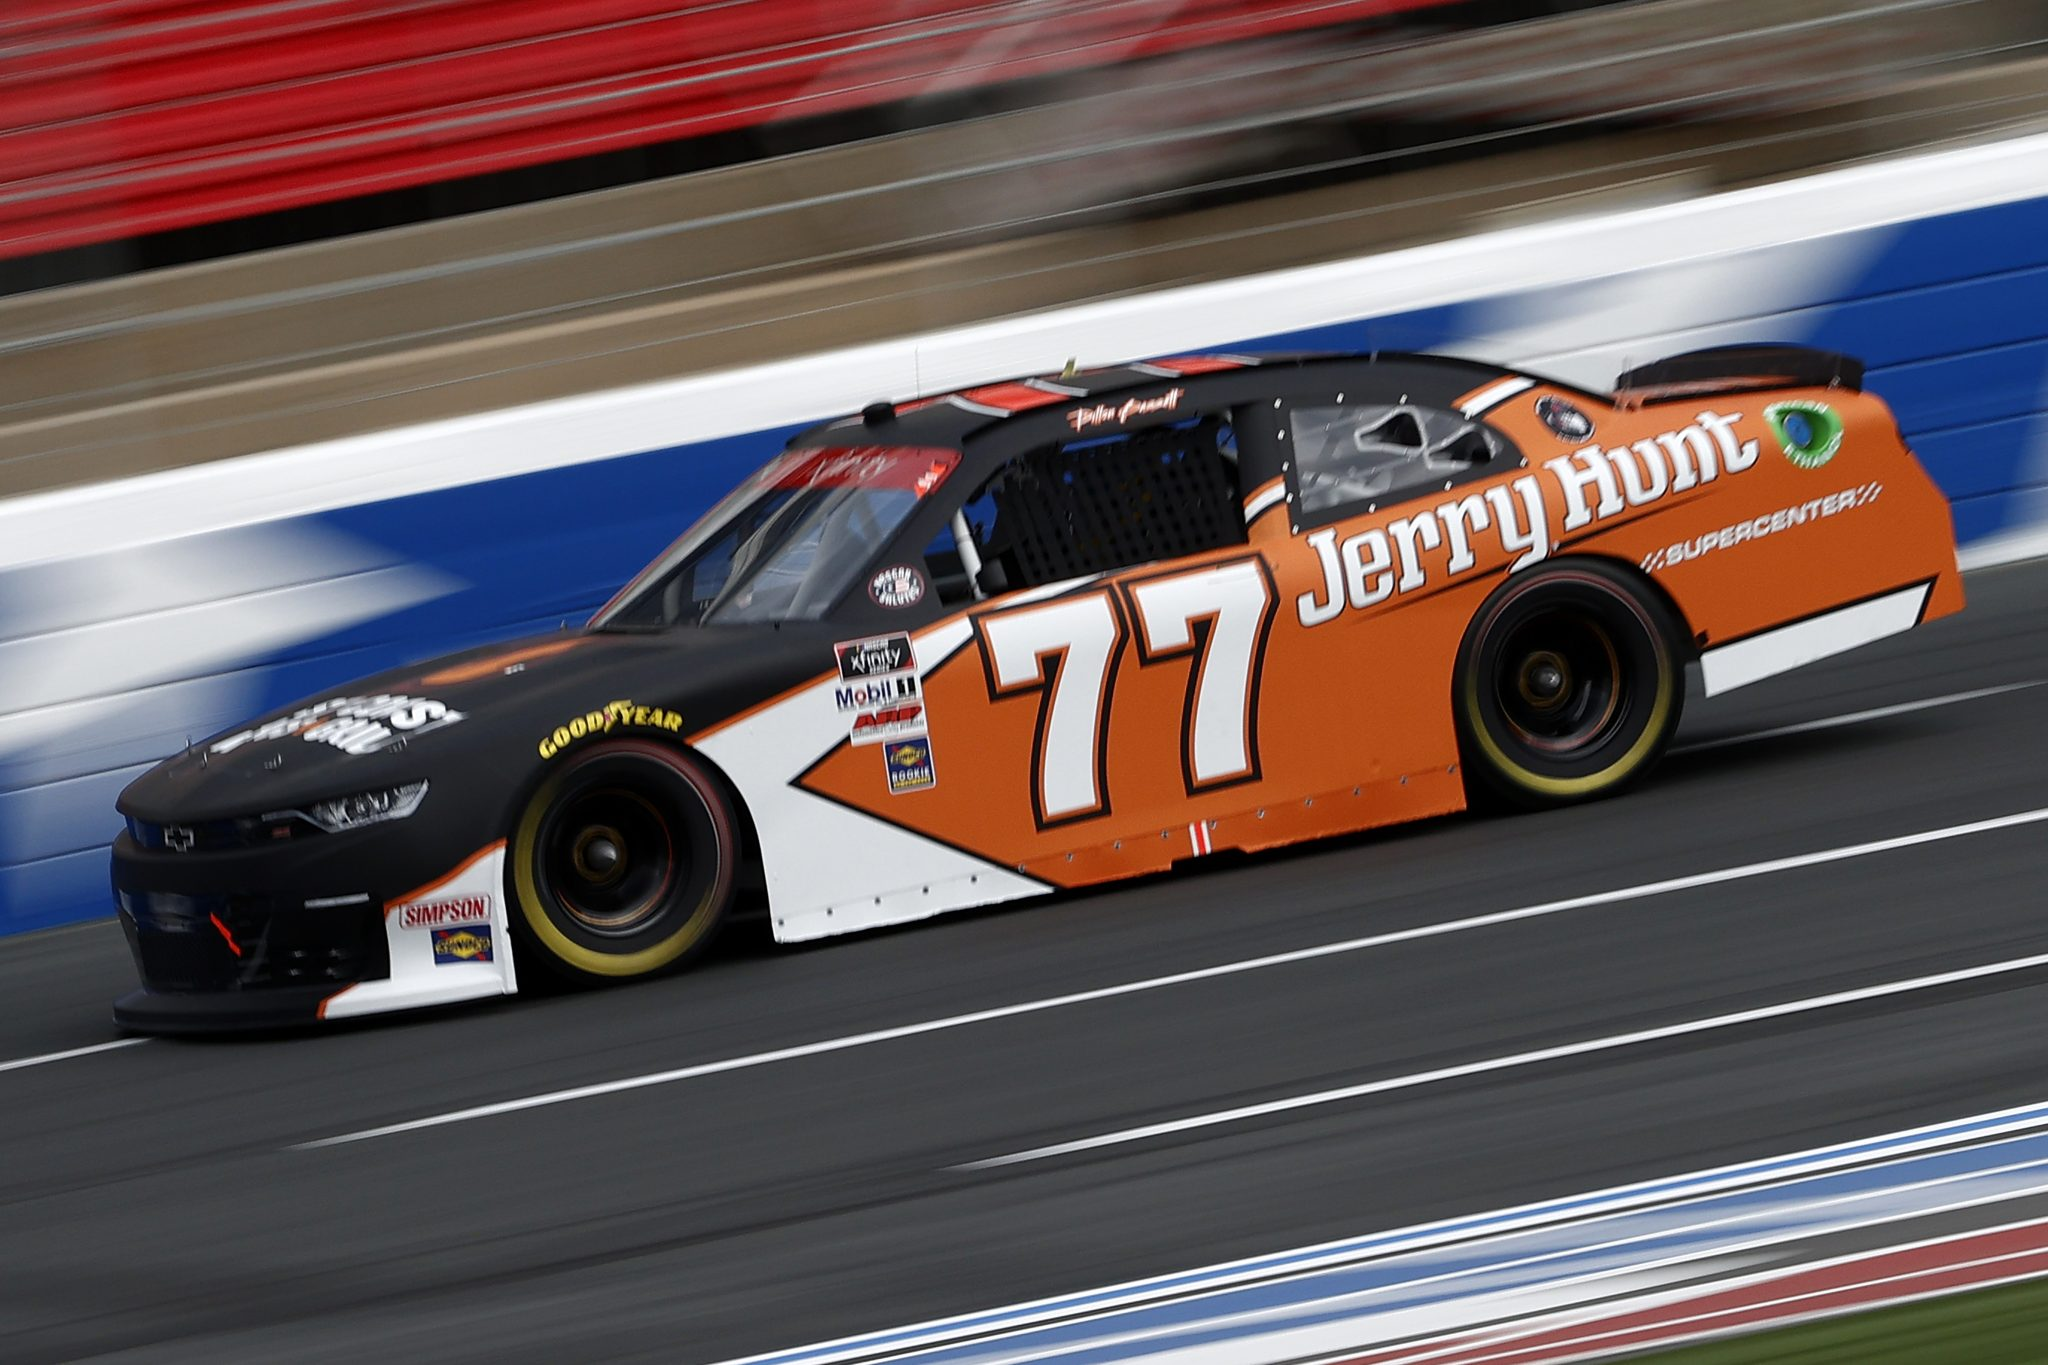 CONCORD, NORTH CAROLINA - MAY 28: Dillon Bassett, driver of the #77 Jerry Hunt Supercenter/East Coast Wings, drives during practice for the NASCAR Xfinity Series Alsco Uniforms 300 at Charlotte Motor Speedway on May 28, 2021 in Concord, North Carolina. (Photo by Maddie Meyer/Getty Images) | Getty Images